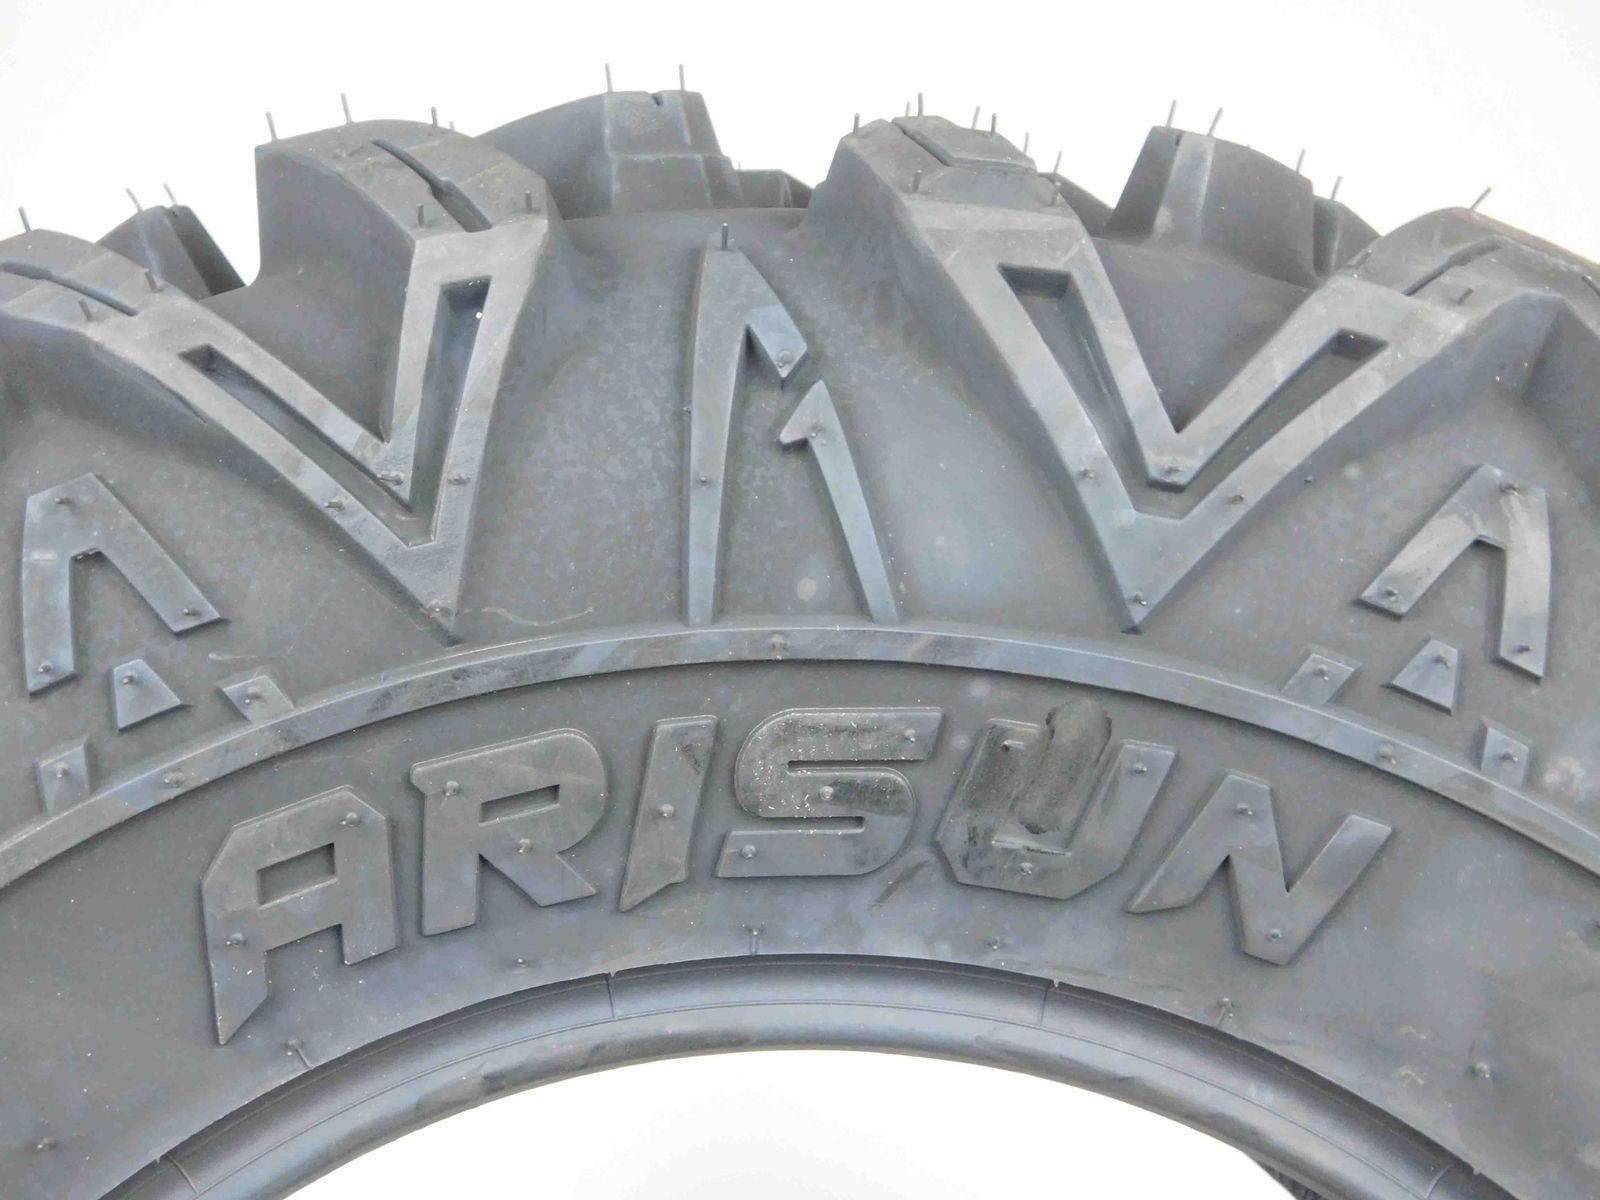 Arisun-28x10-14-Tires-Bruiser-XT-RADIAL-8ply-255-70R14-N4D-Protection-image-2